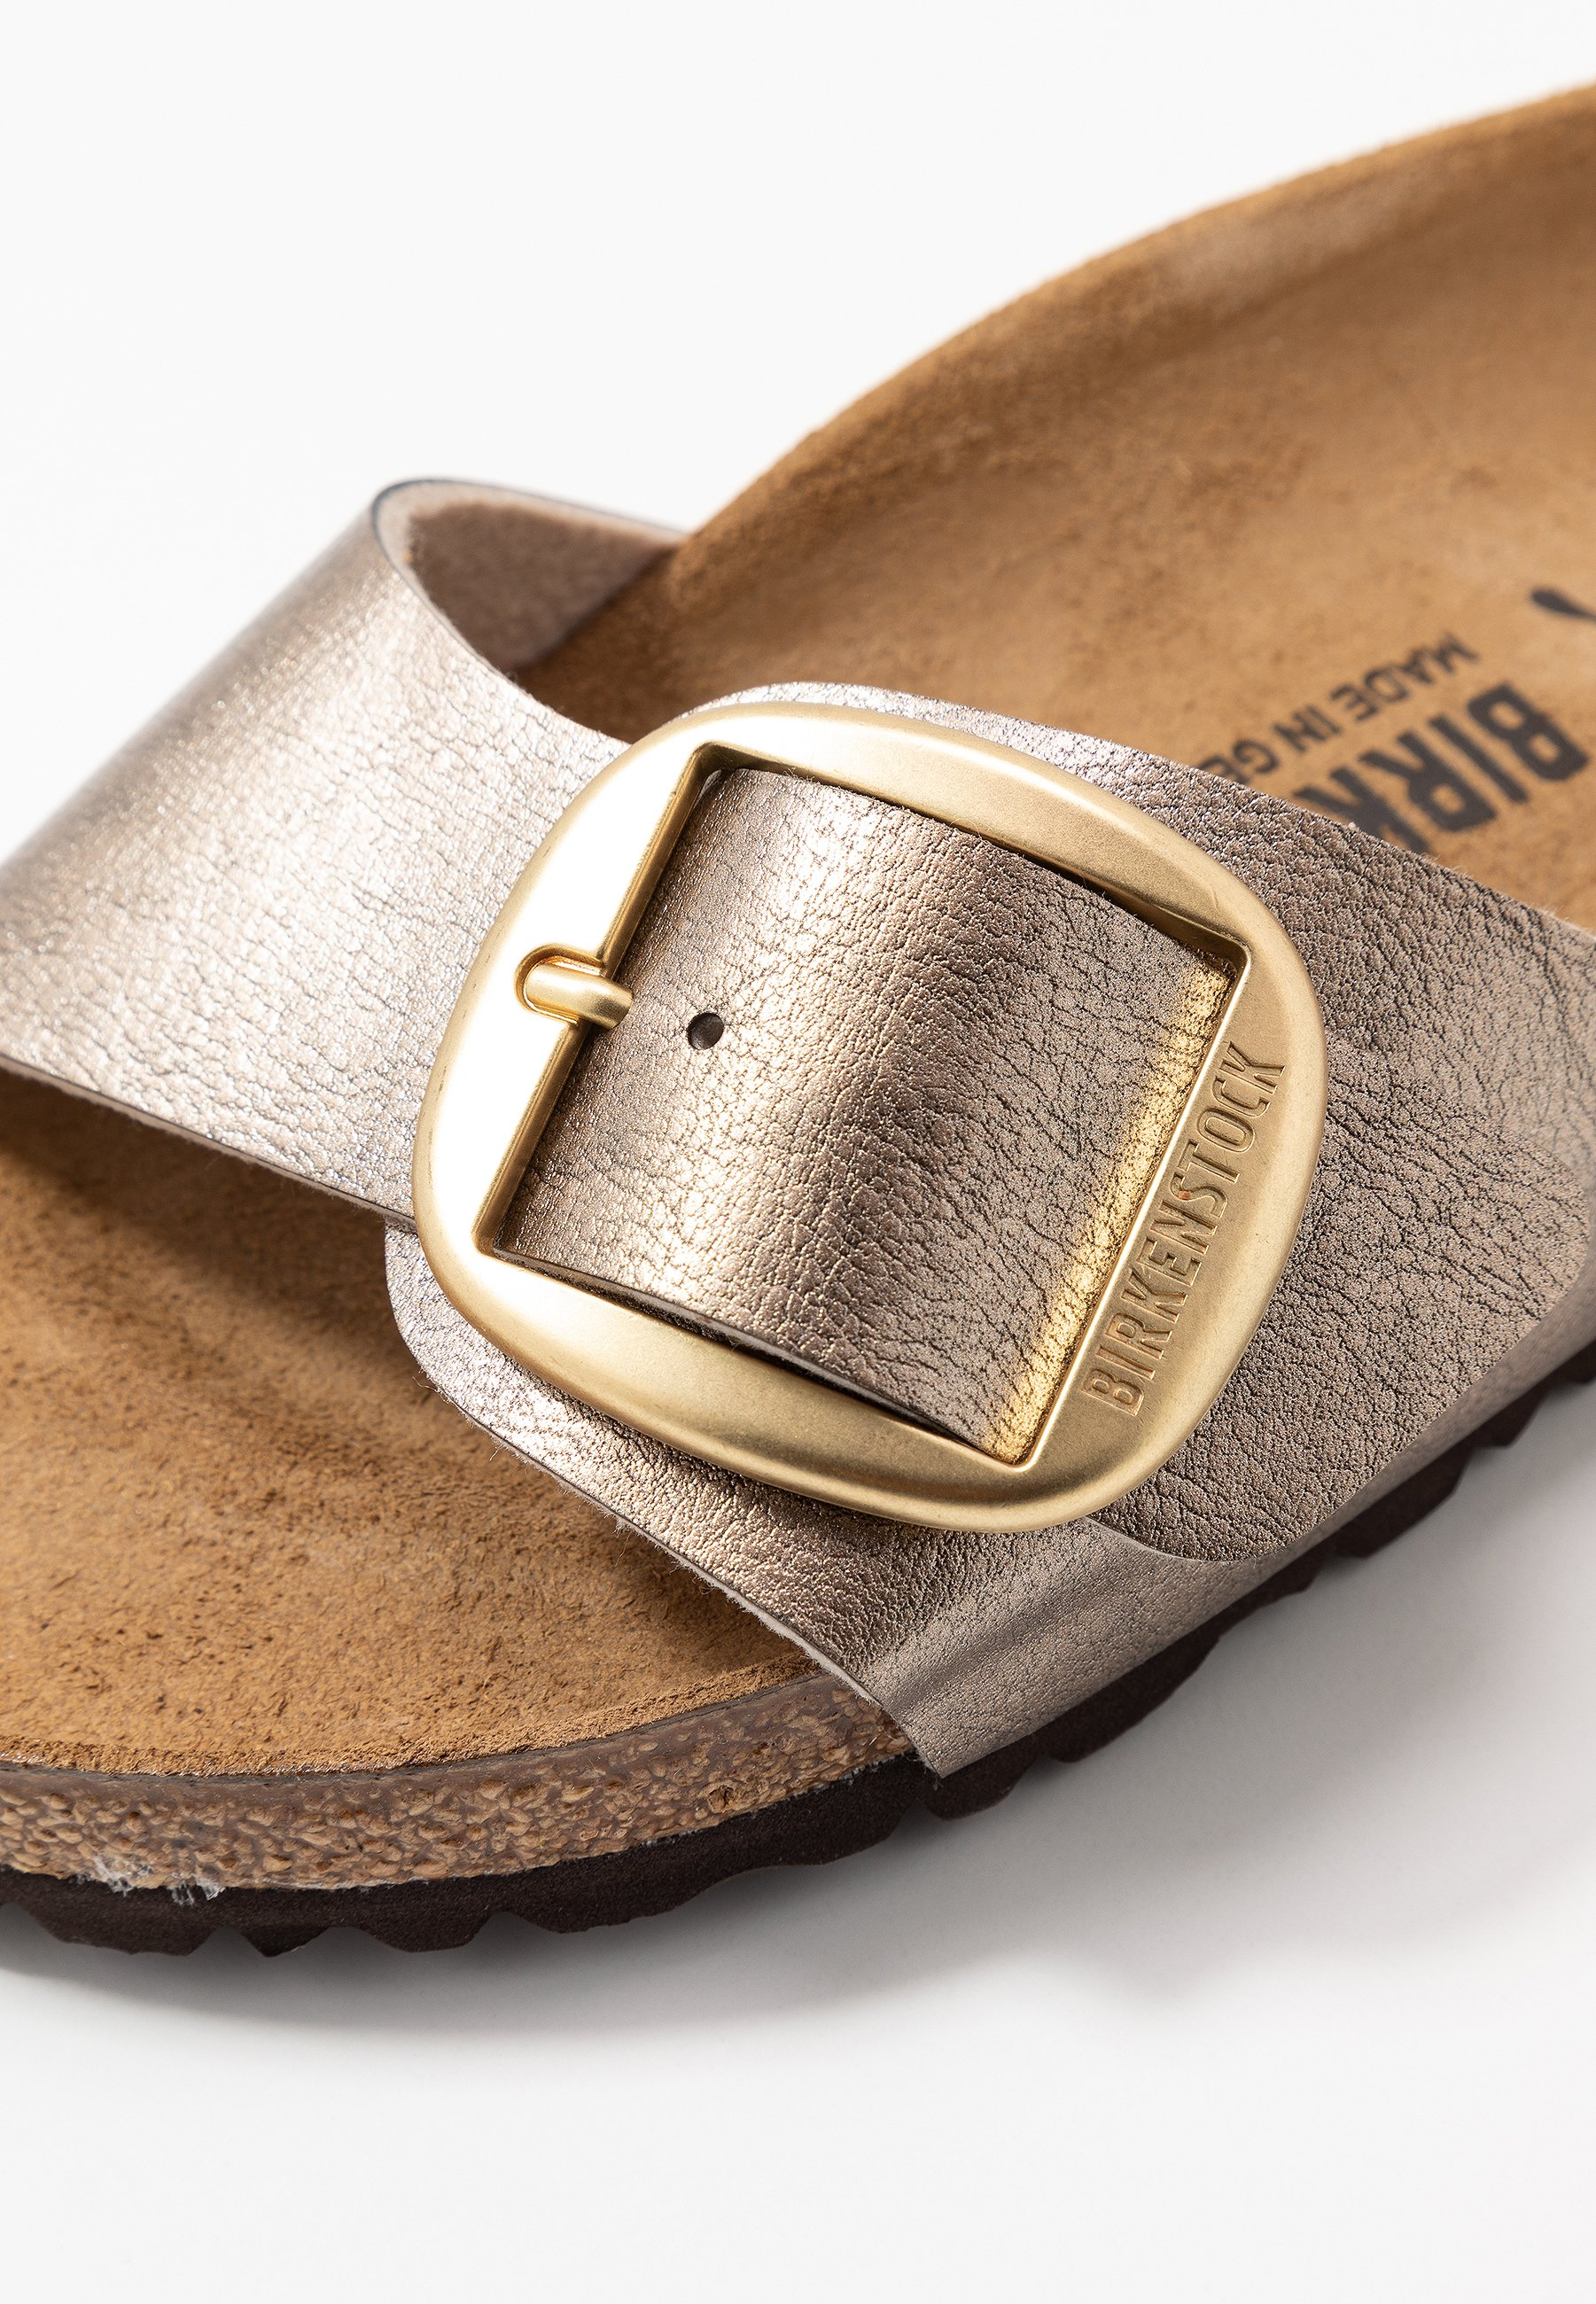 Birkenstock MADRID BIG BUCKLE Hausschuh graceful taupe/taupe